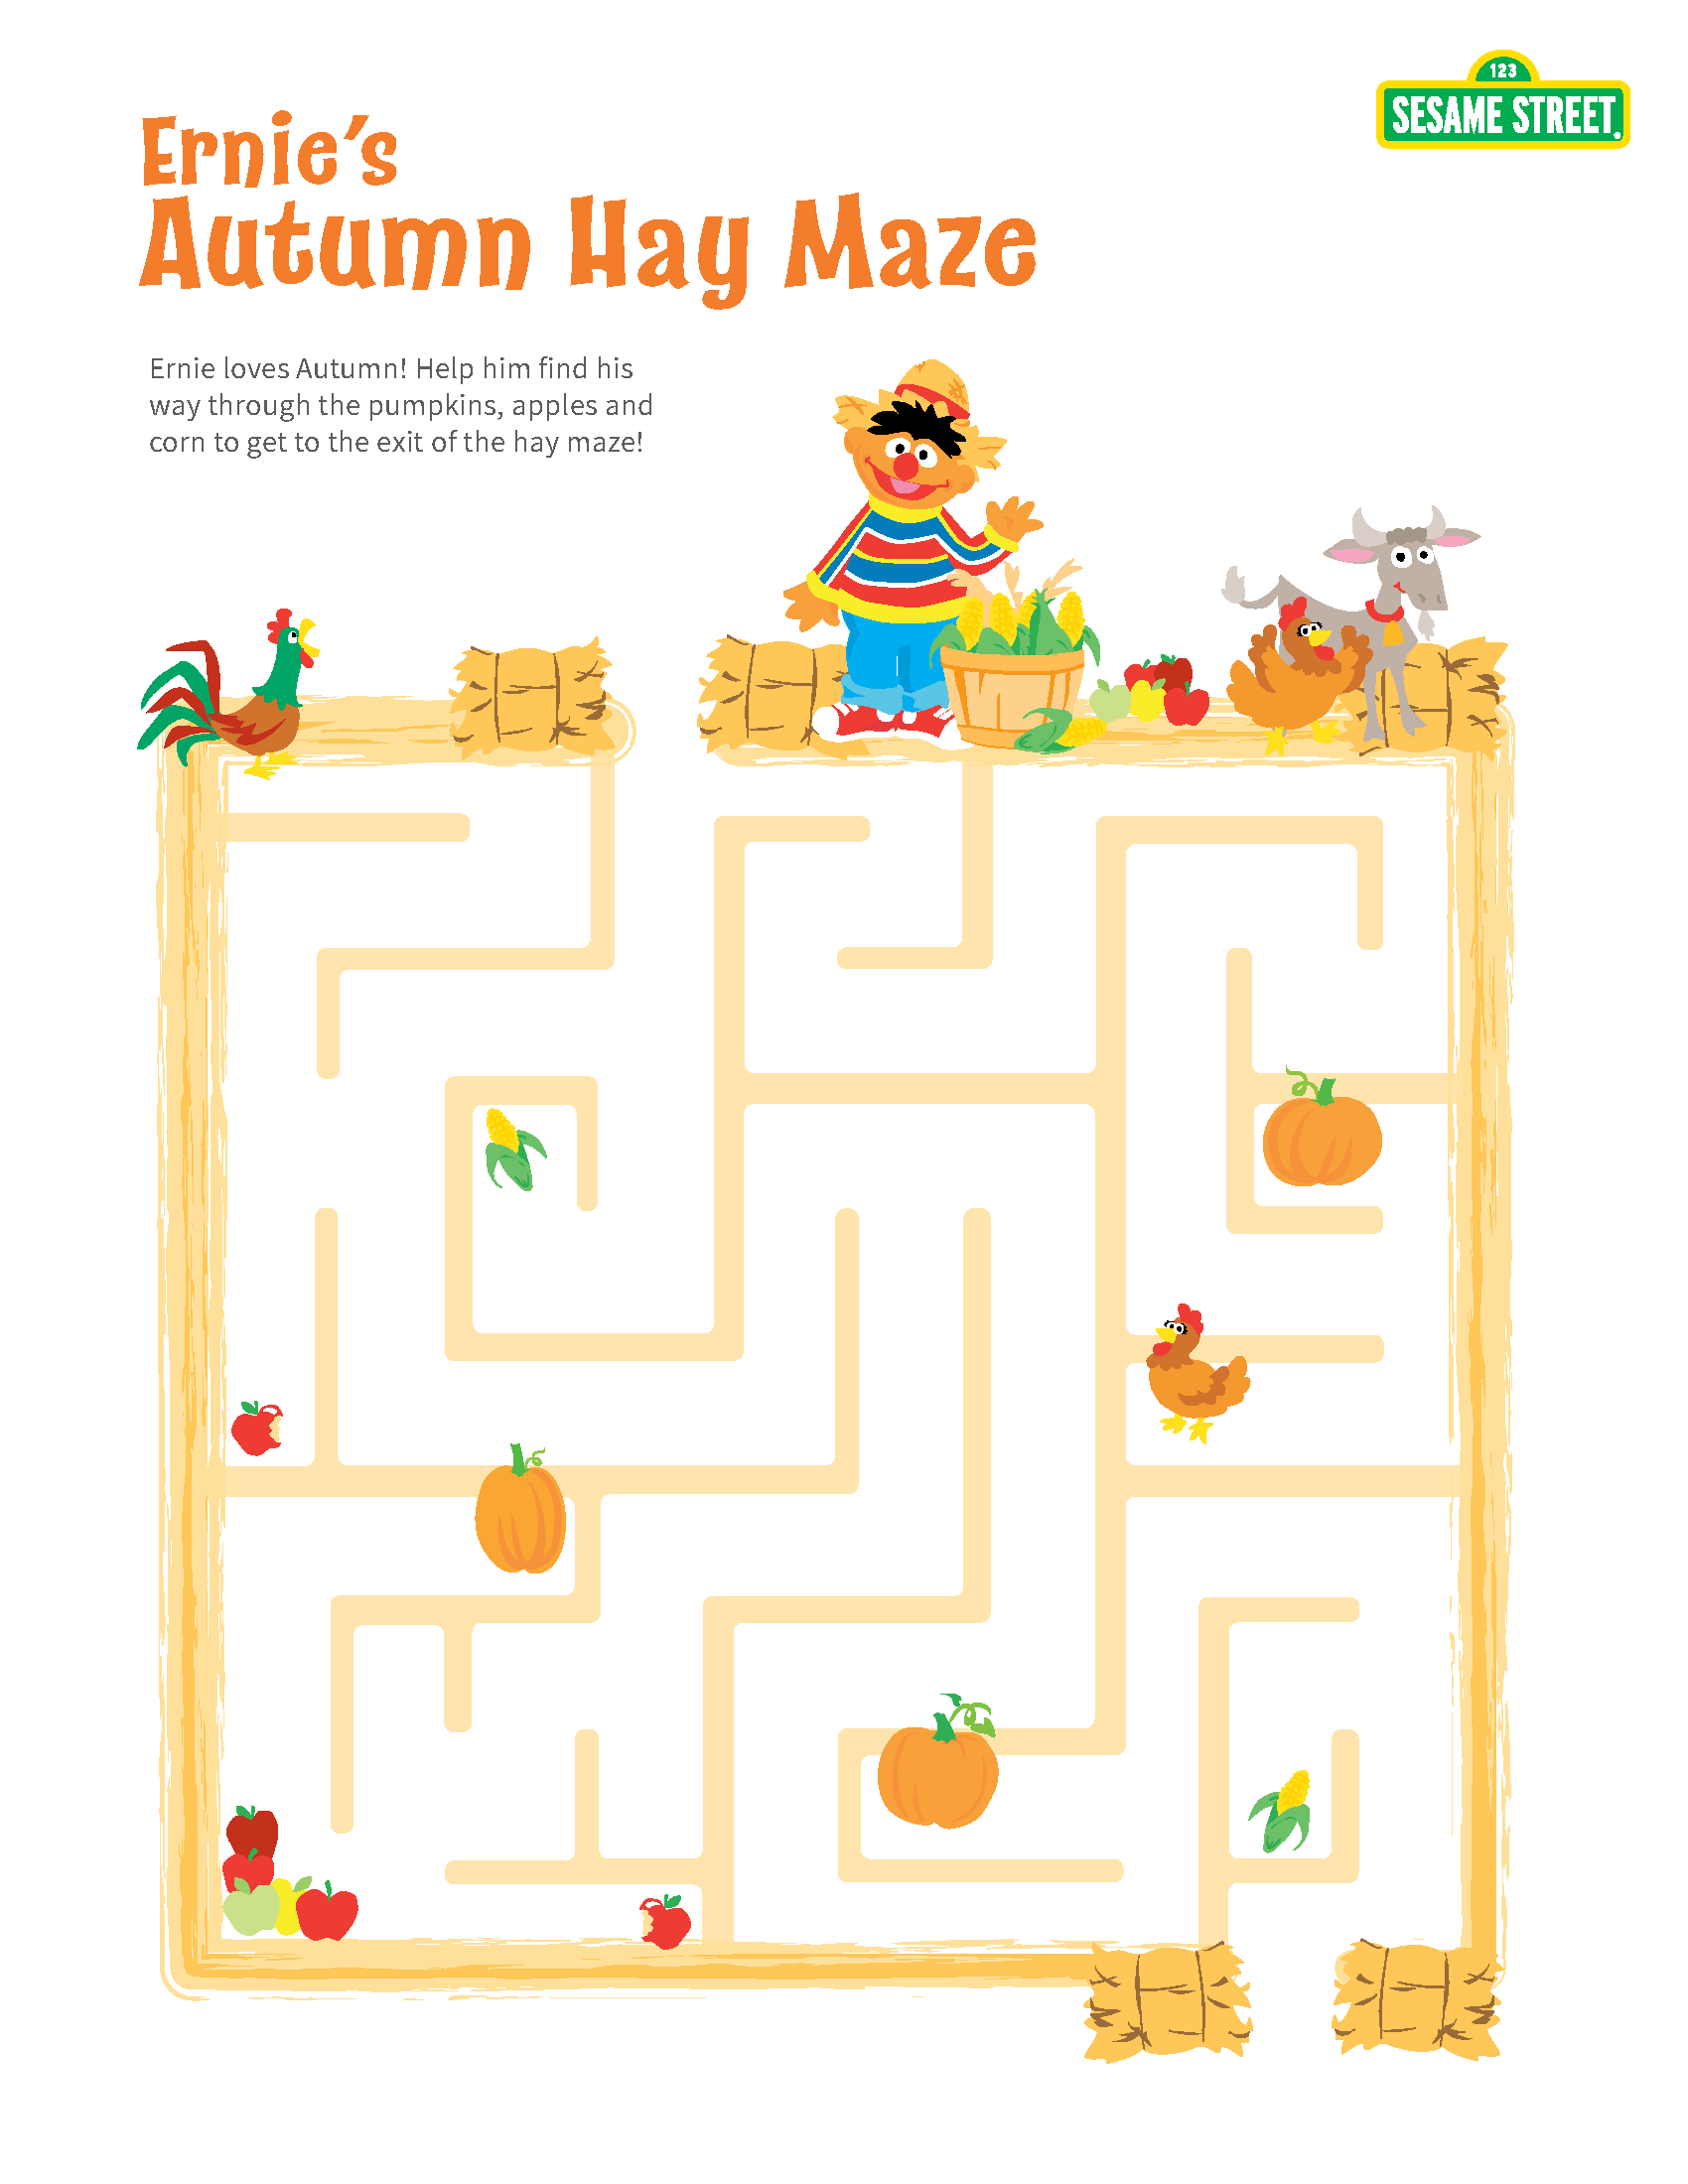 Printable Sesame Street Autumn Hay Maze With Ernie